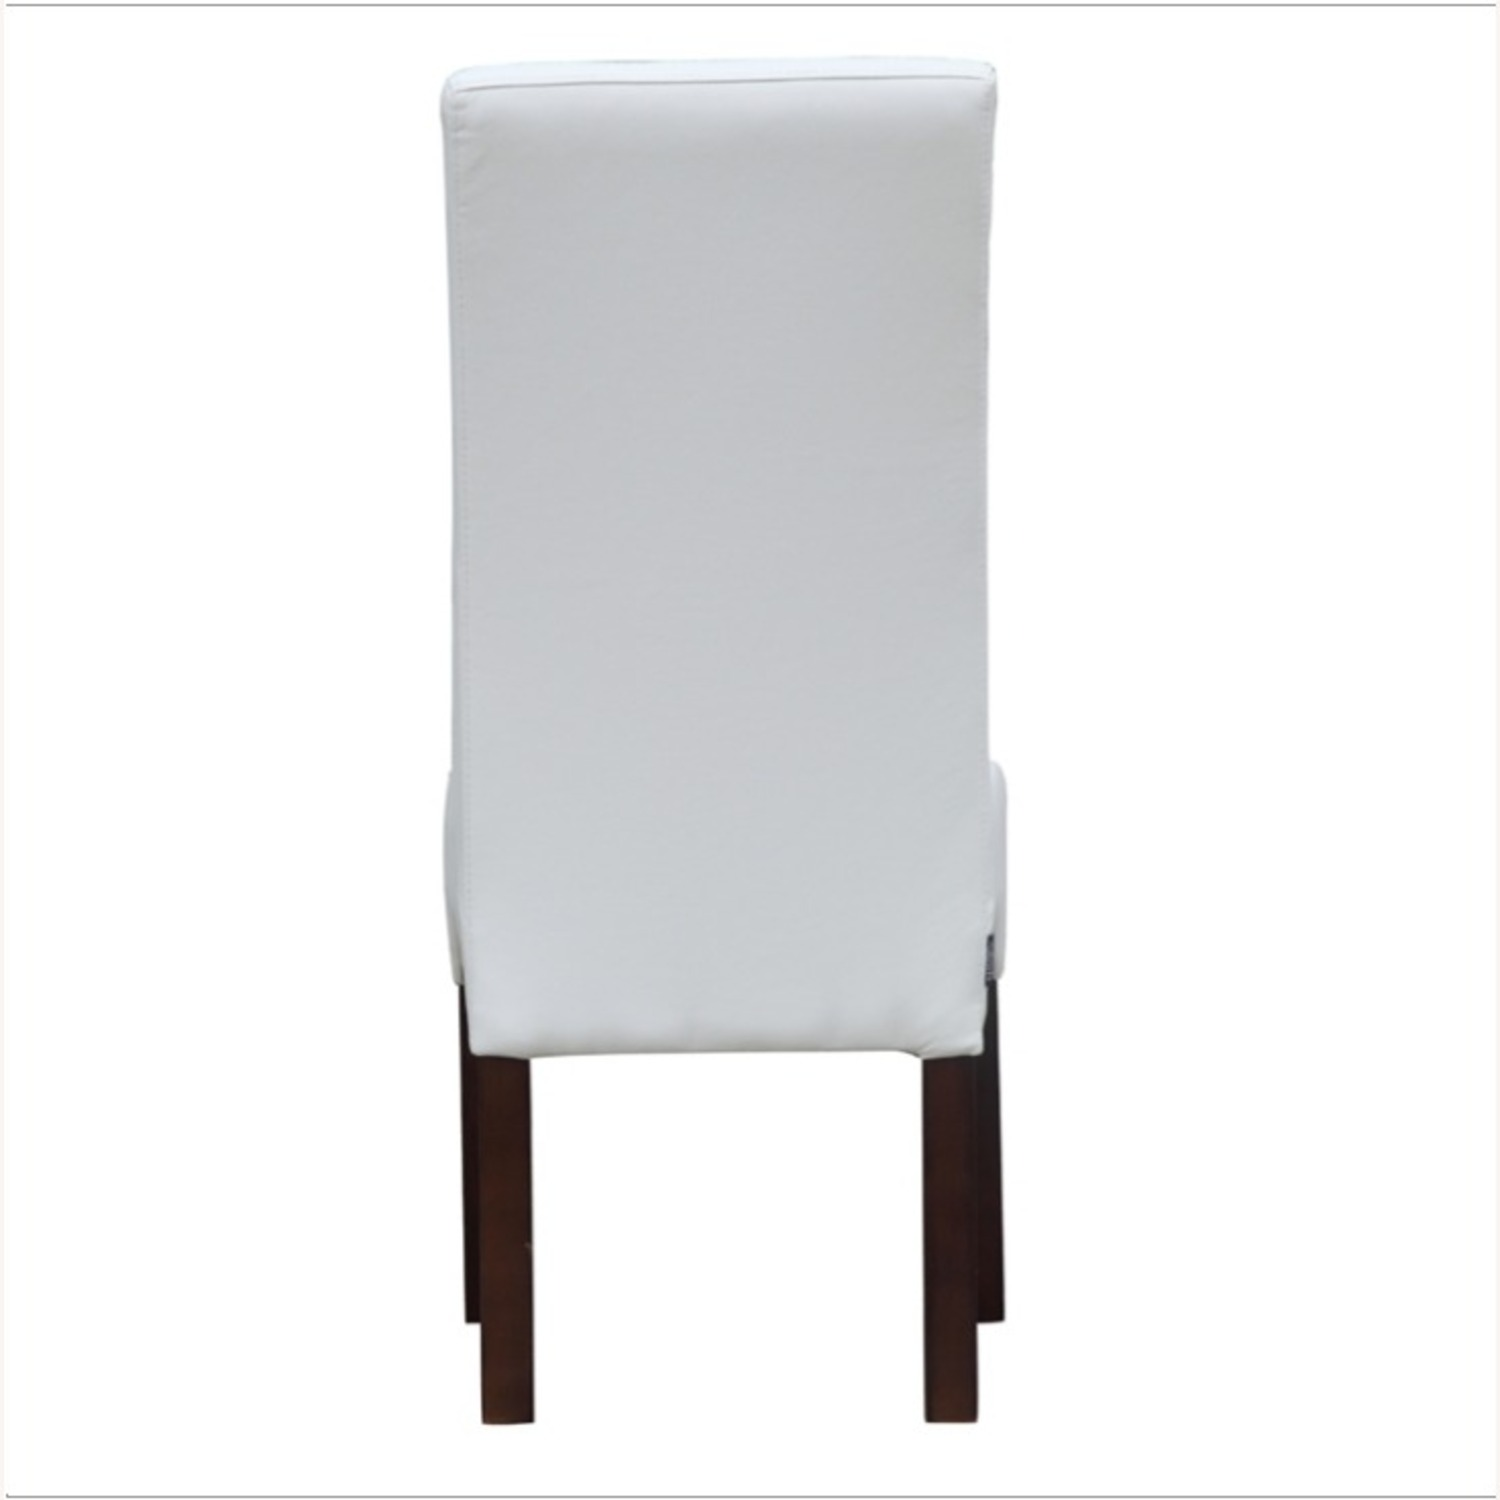 Modern Dining Chair In White PU Leather - image-2